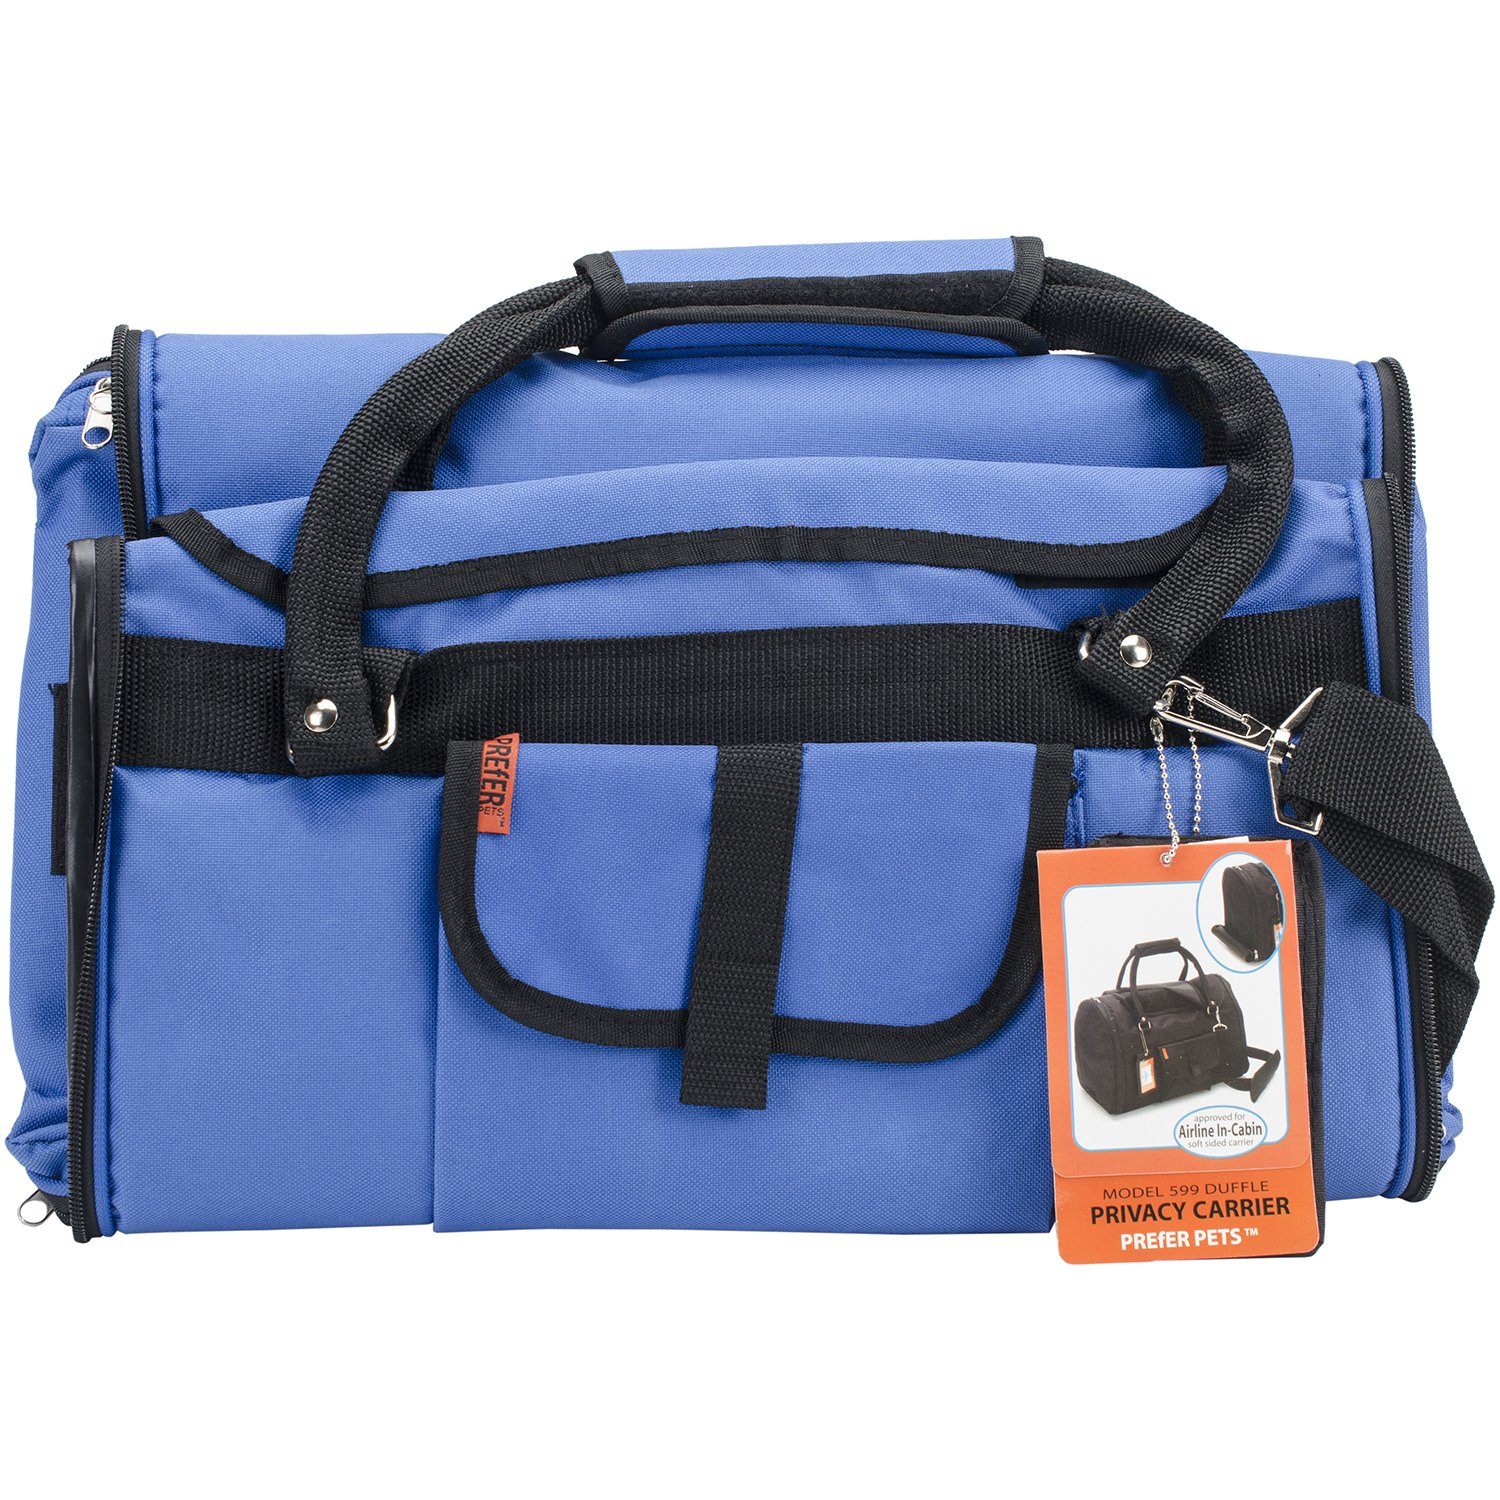 Prefer Pets Travel Gear Privacy Carrier, 17 x 12 x 10'', Blue by Prefer Pets Travel Gear (Image #1)